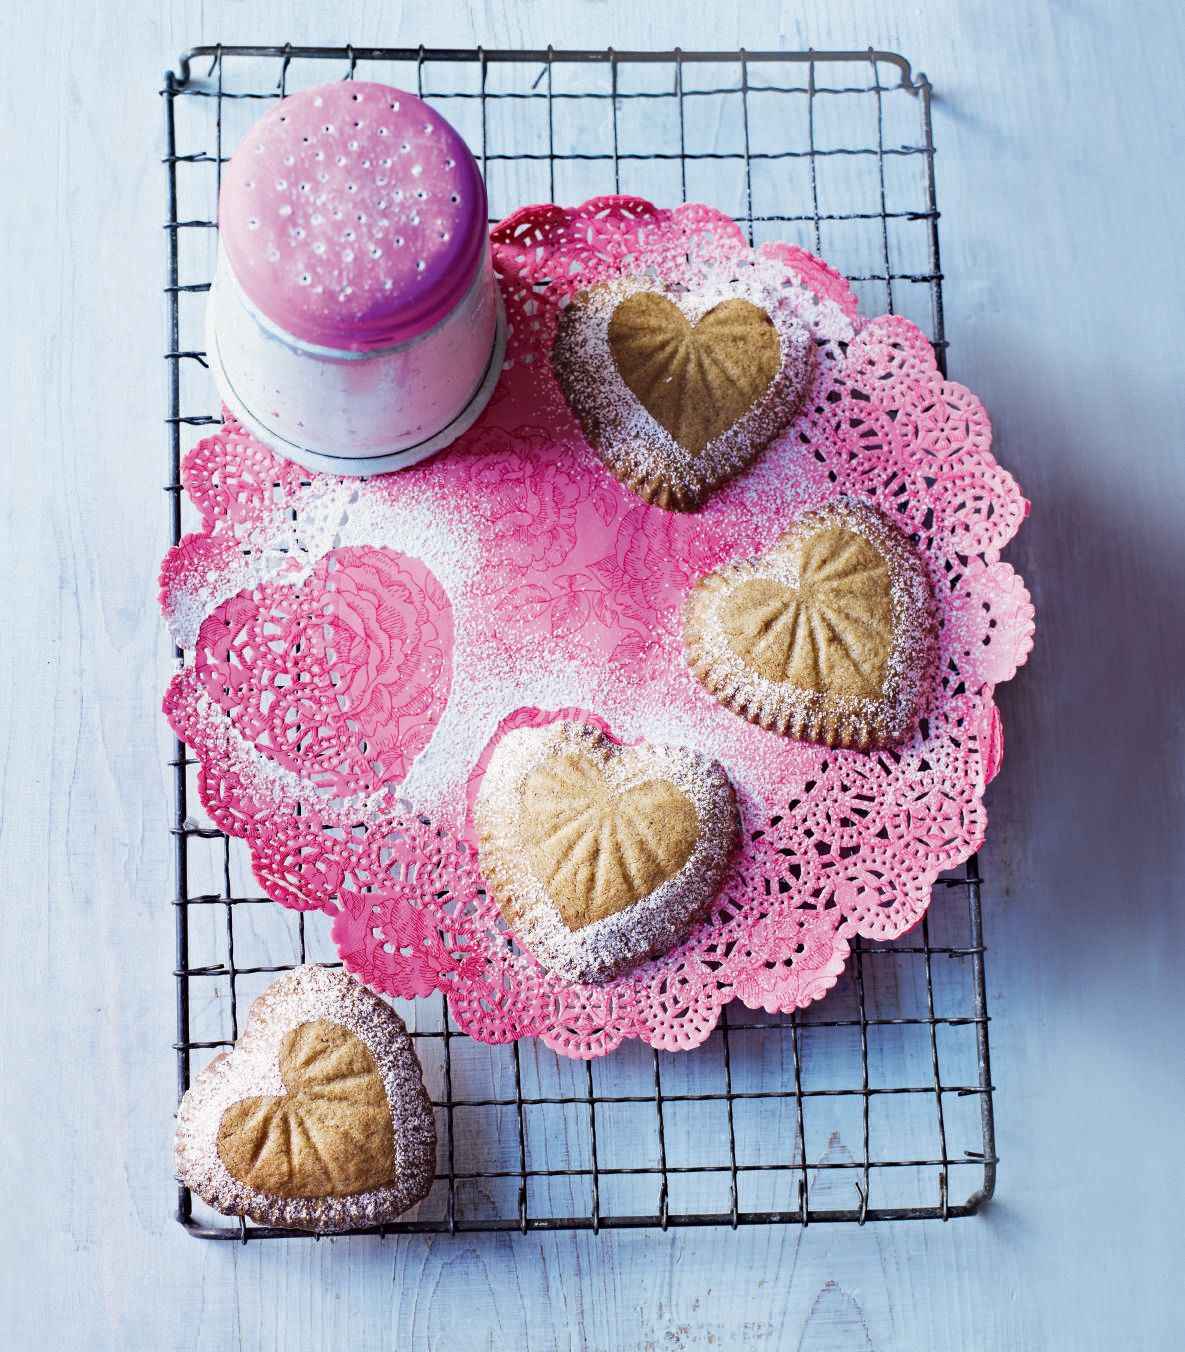 Spiced Ginger Biscuits Recipe Delicious Magazine Recipe Ginger Biscuits Biscuit Recipe Yummy Food